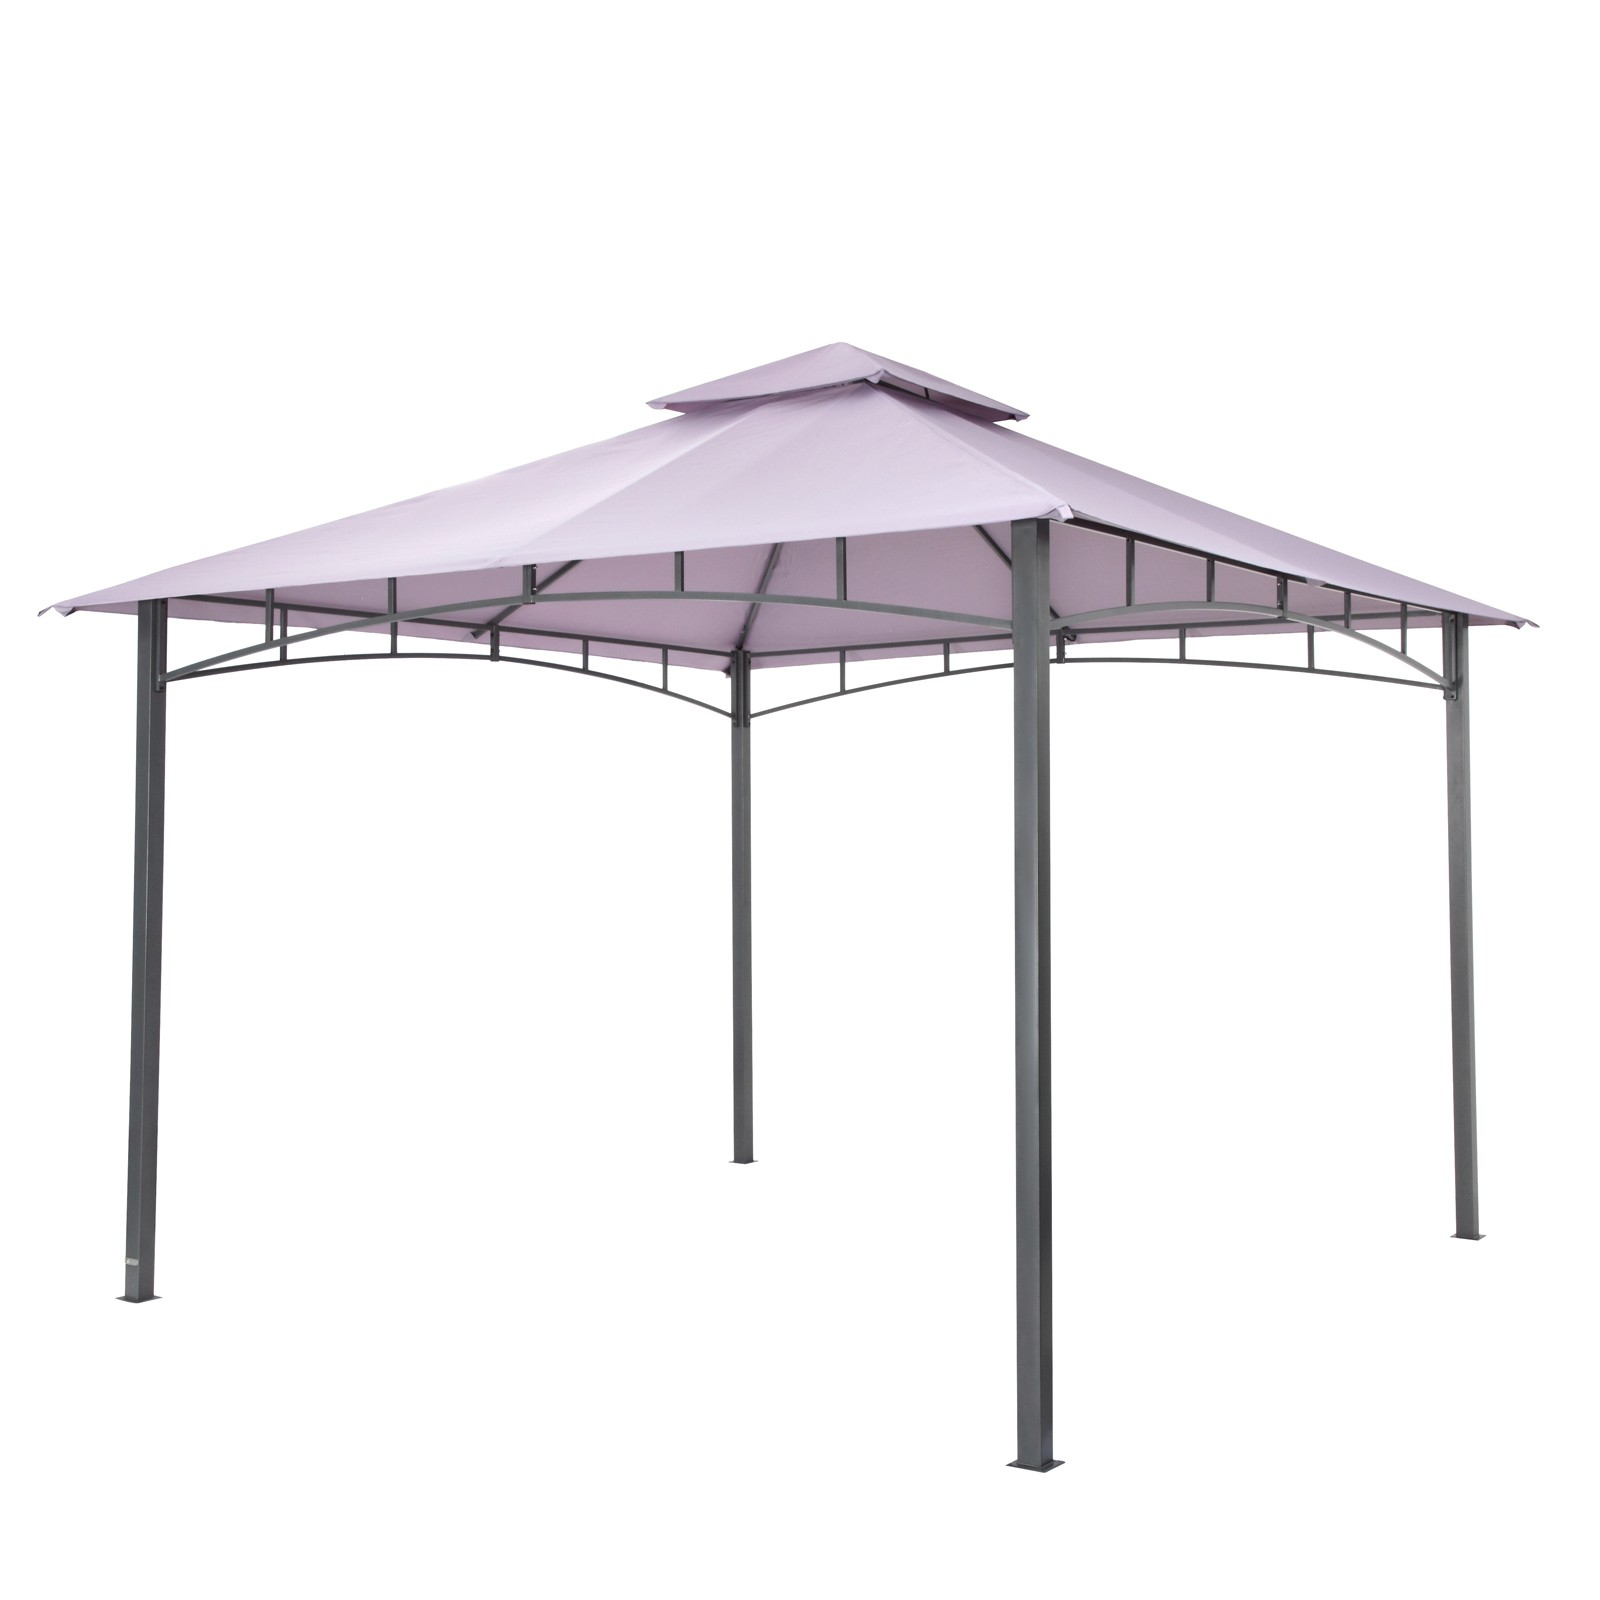 tepro garten pavillon 3x3 m gartenzelt camping partyzelt festzelt waya lavendel ebay. Black Bedroom Furniture Sets. Home Design Ideas